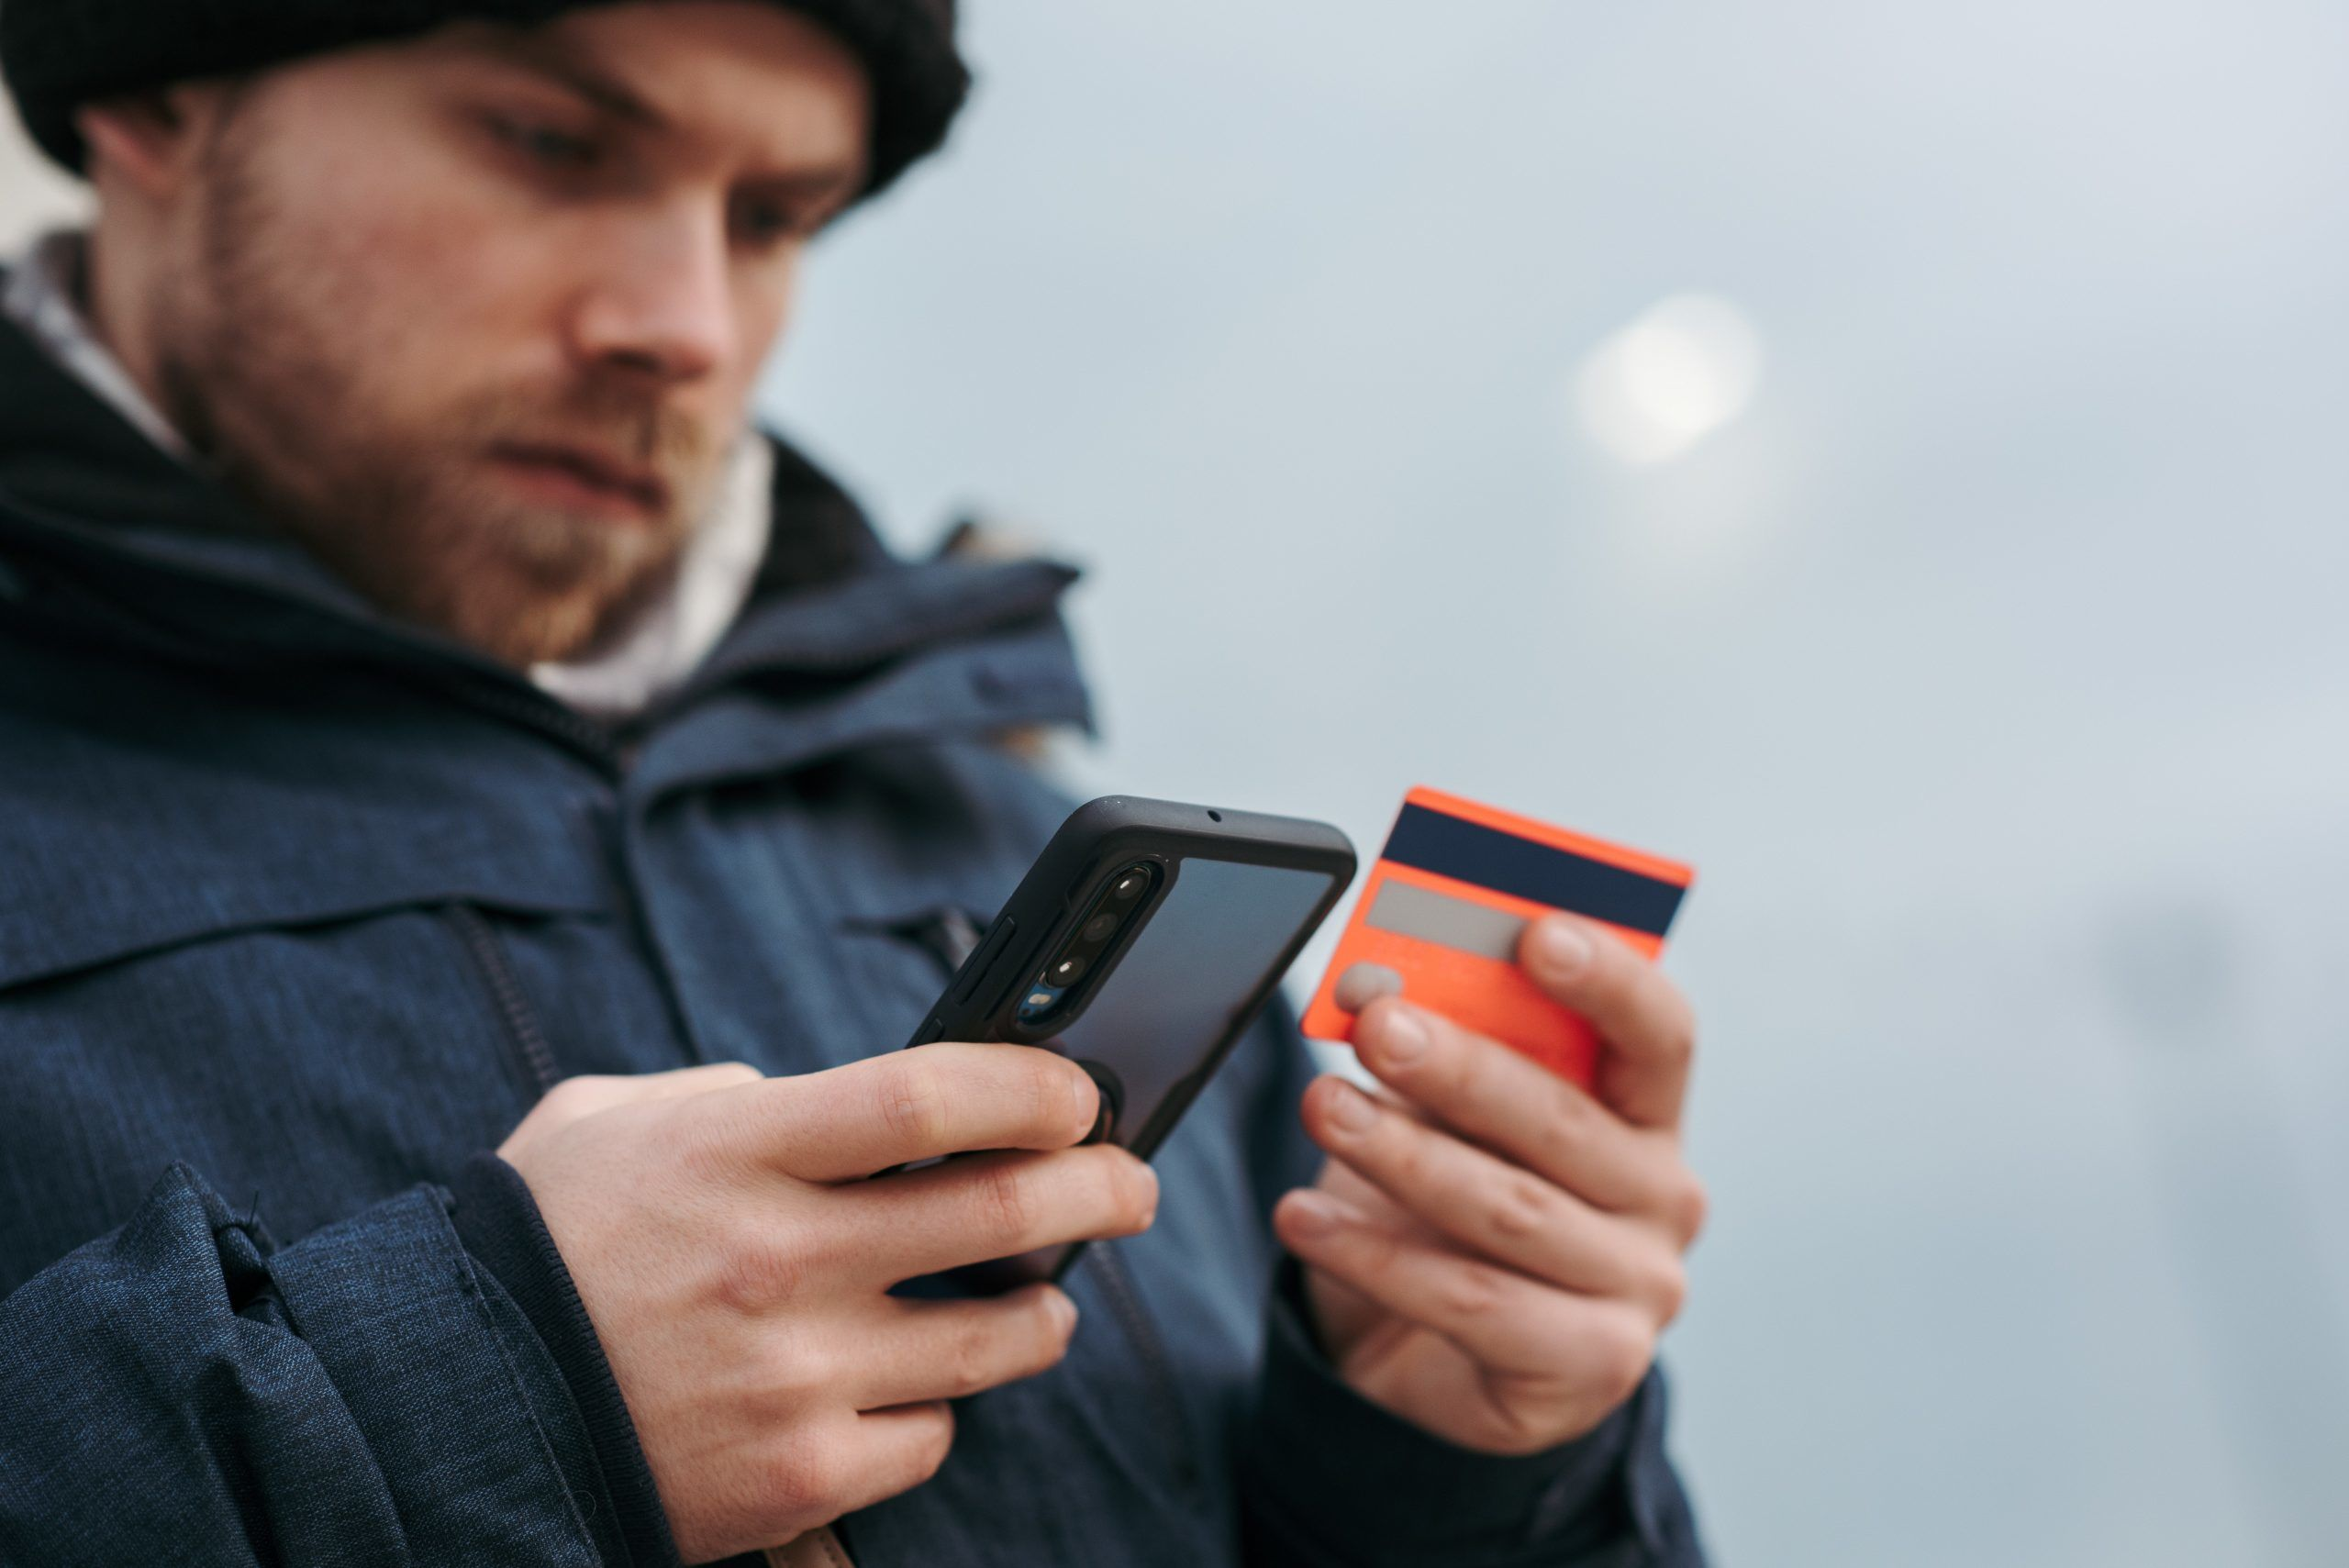 man-purchasing-on-phone-scaled